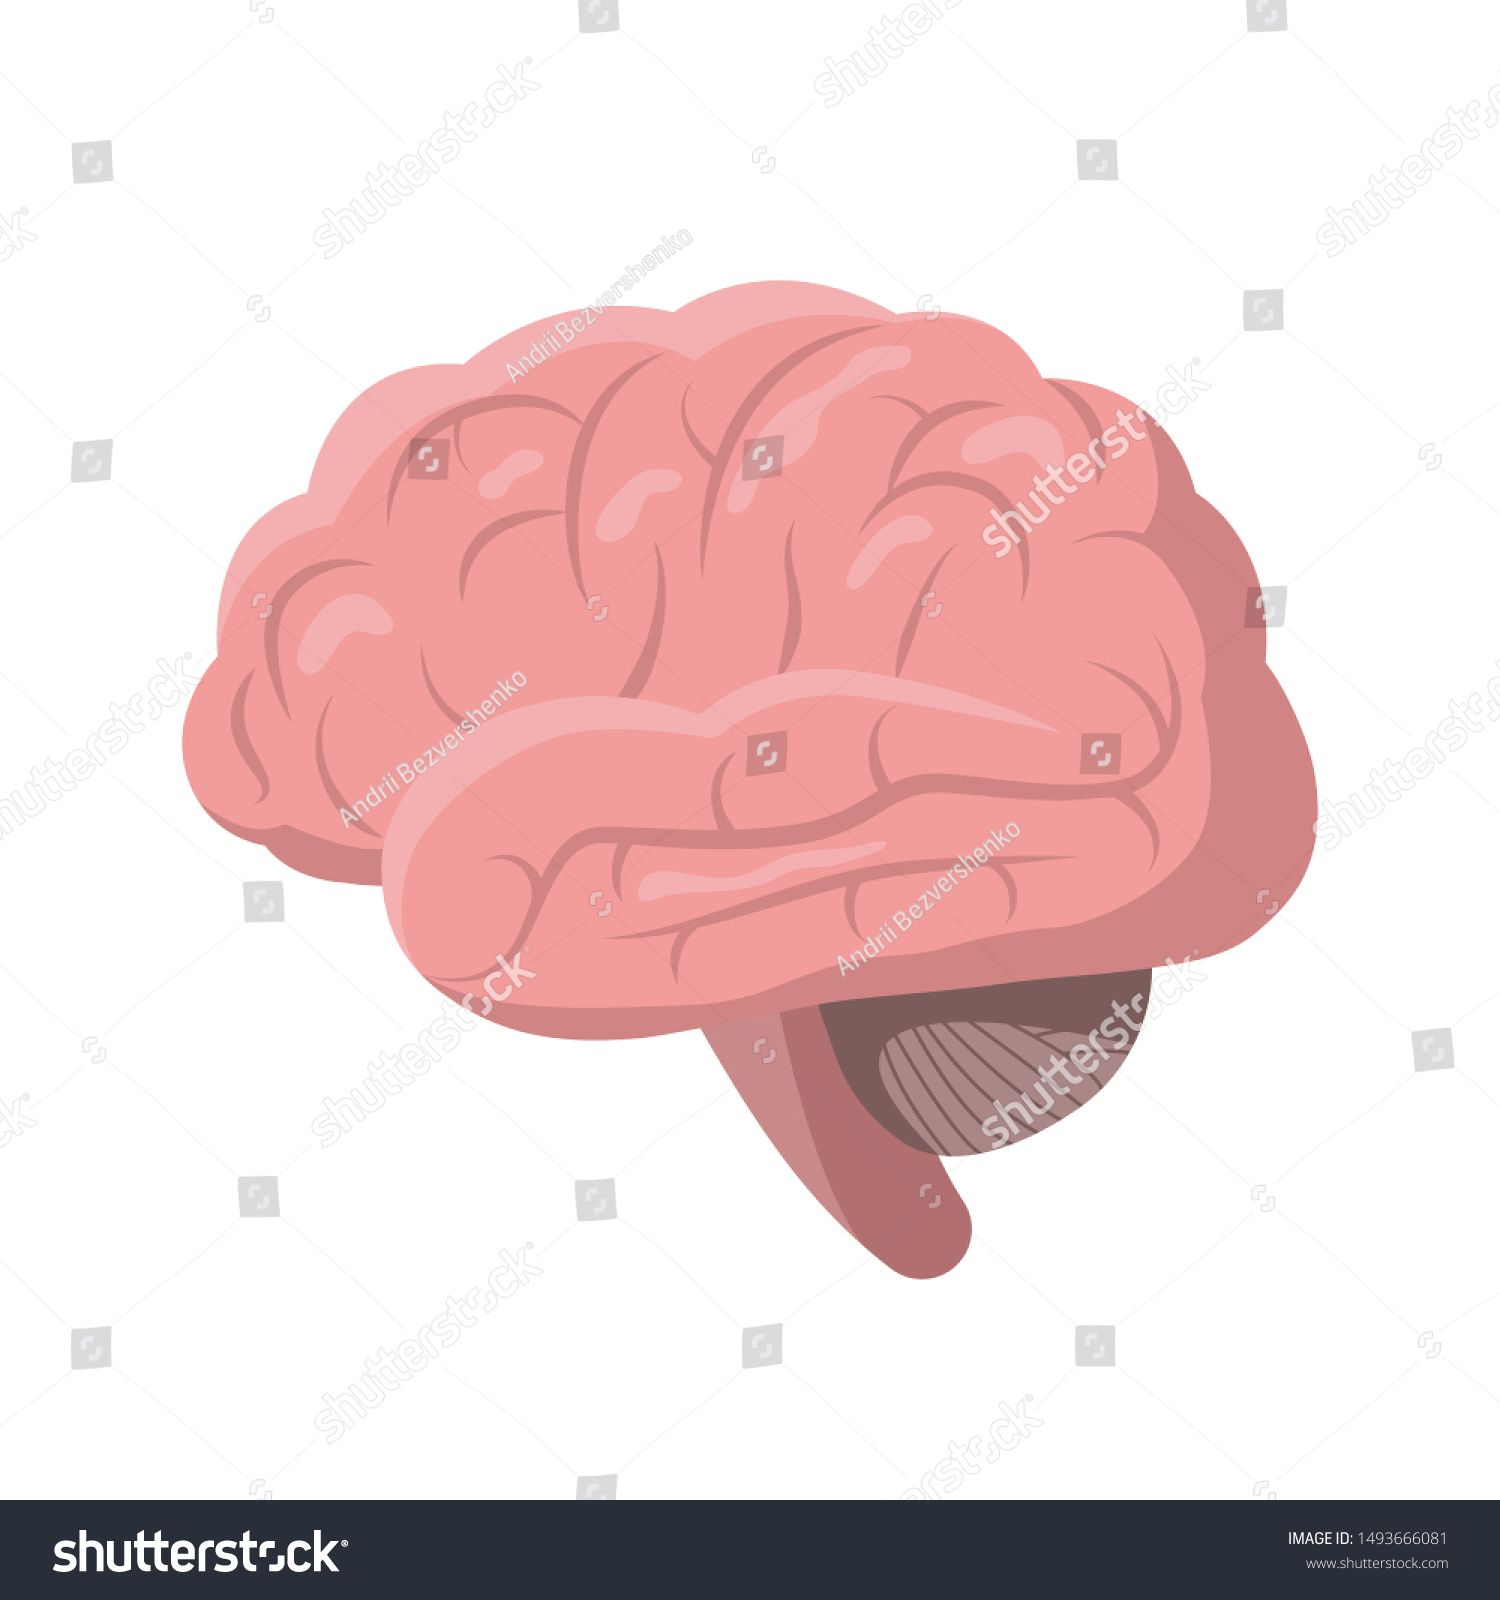 Human Brain isolated on white background, vector ...